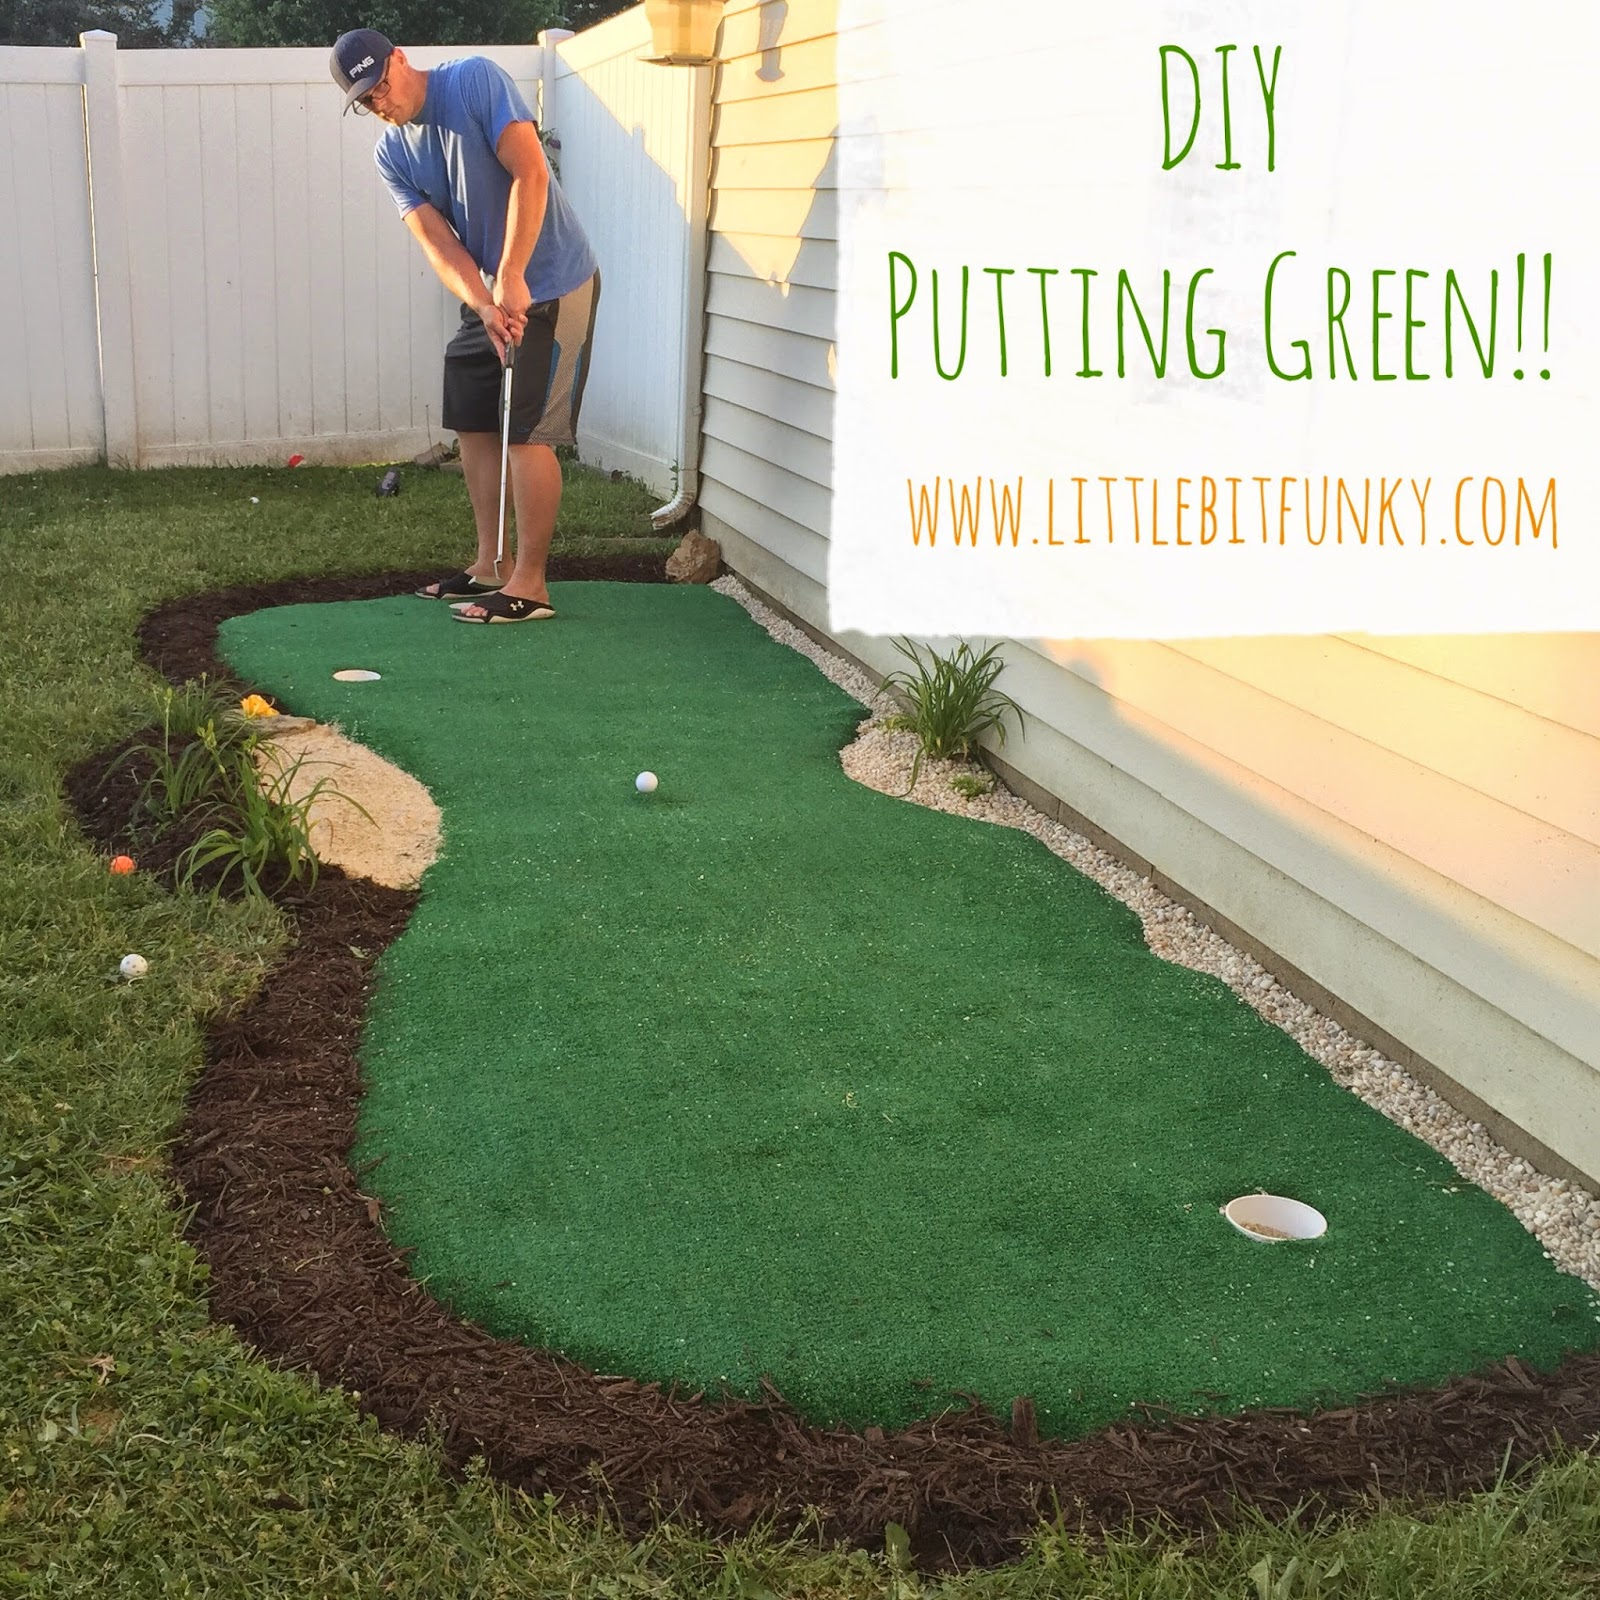 Little Bit Funky: How to make a backyard putting green! {DIY ...